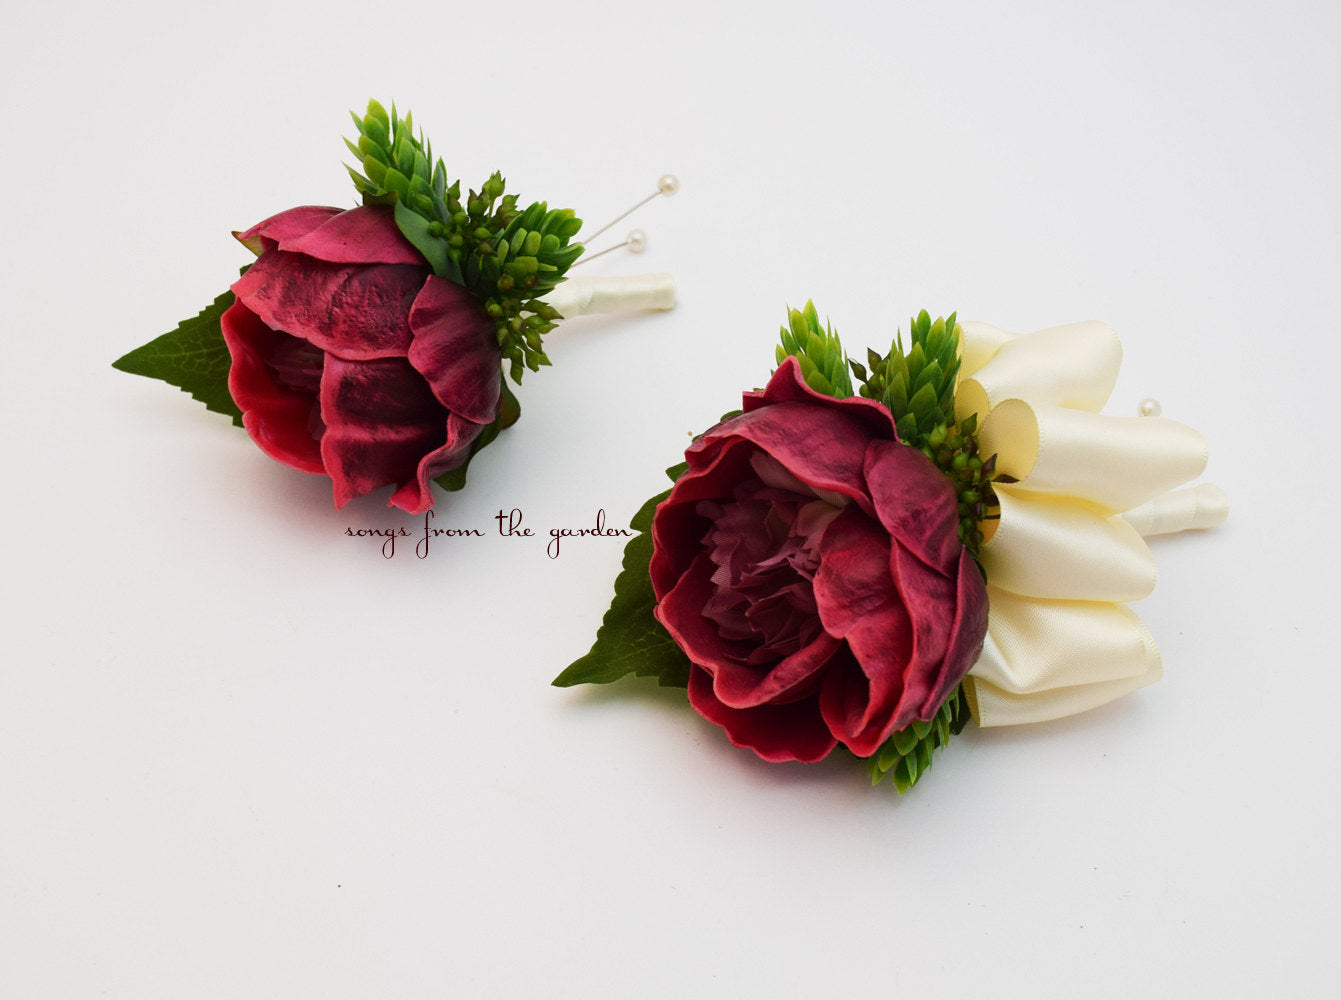 Burgundy and Ivory Real Touch Peony Wedding Boutonniere & Corsage - Hops and Eucualyptus Accents